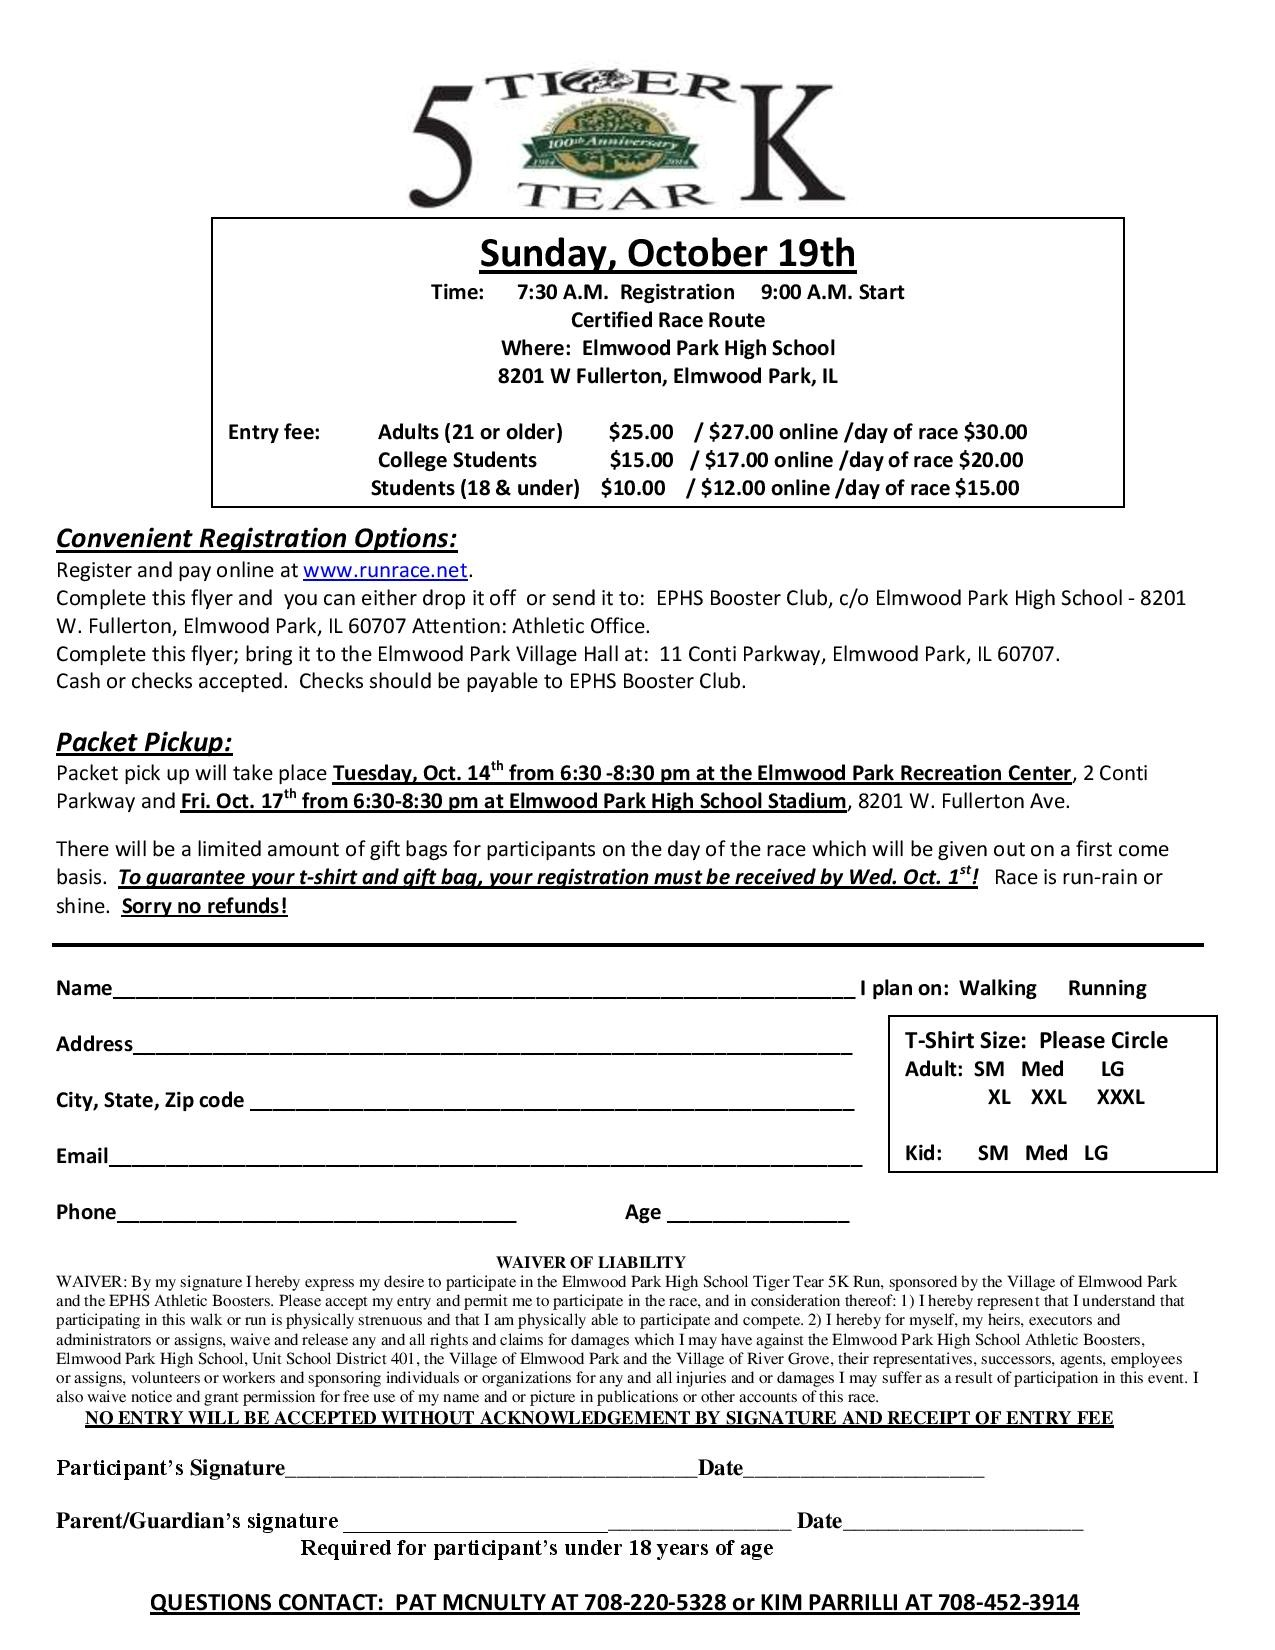 or Register online by clicking the link below:     http://www.runrace.net/findarace.php?id=14292IL&tab=a3